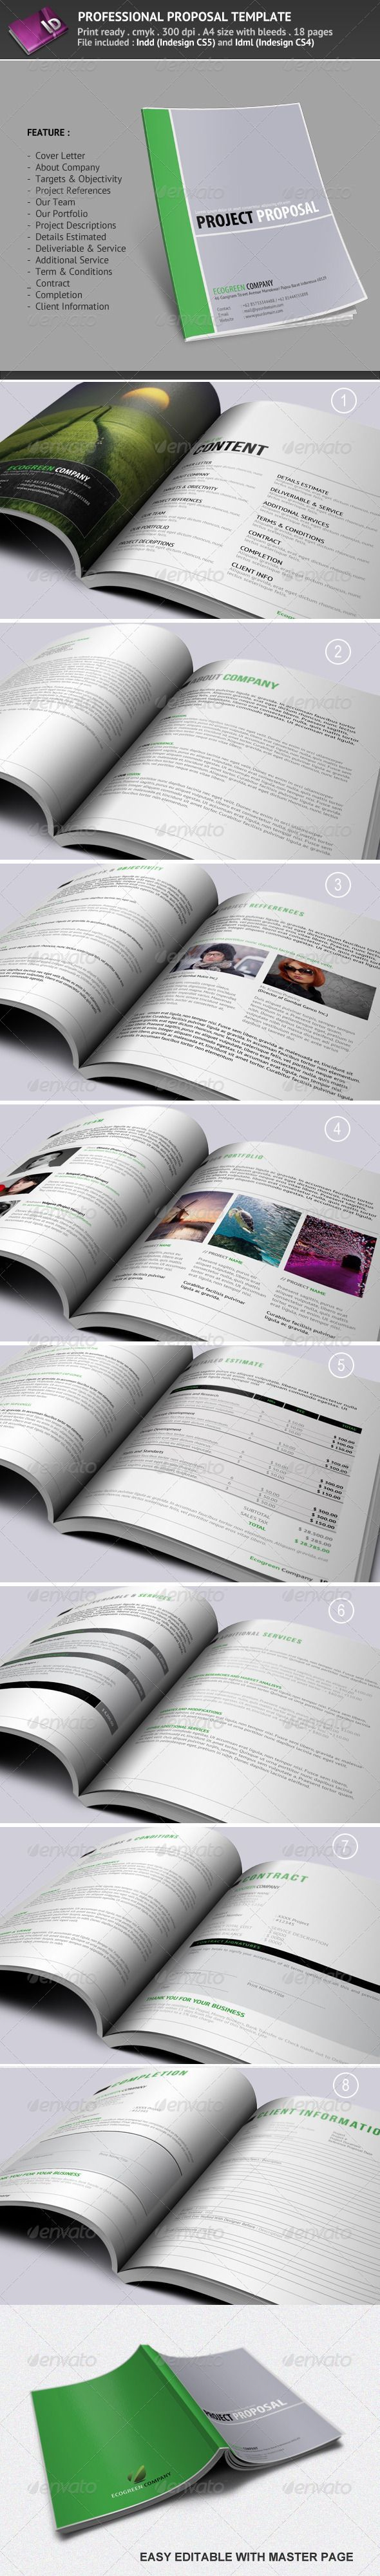 29 best images about Commercial proposal – Commercial Proposal Template